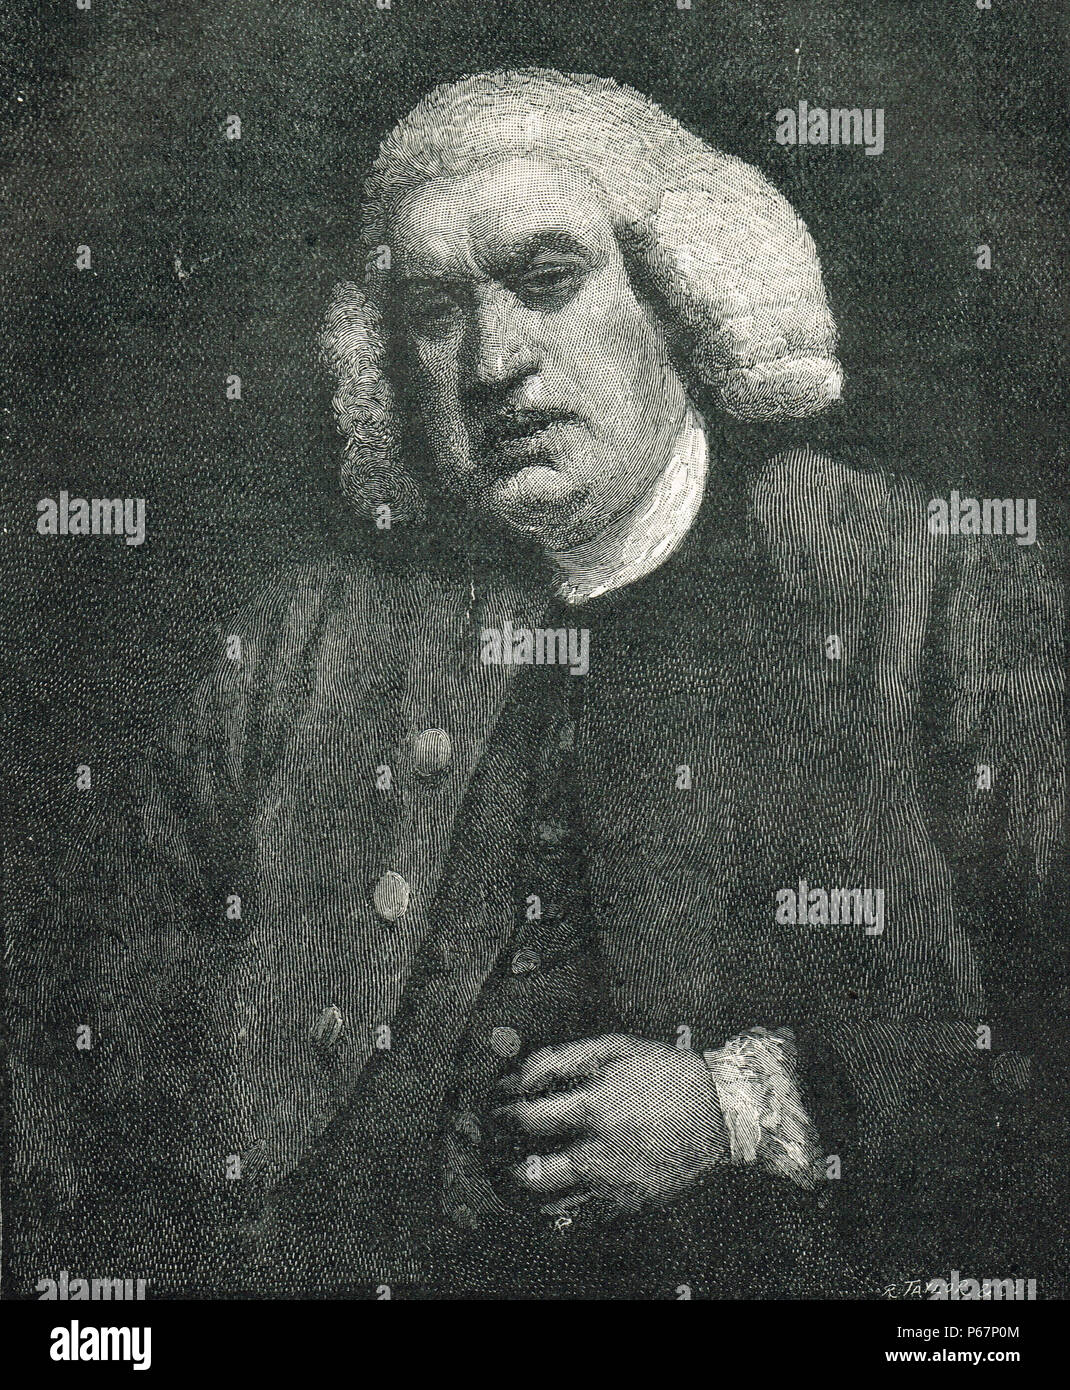 Dr Samuel Johnson, 1709-1784, poet, essayist, moralist, literary critic, biographer, editor, lexicographer - Stock Image